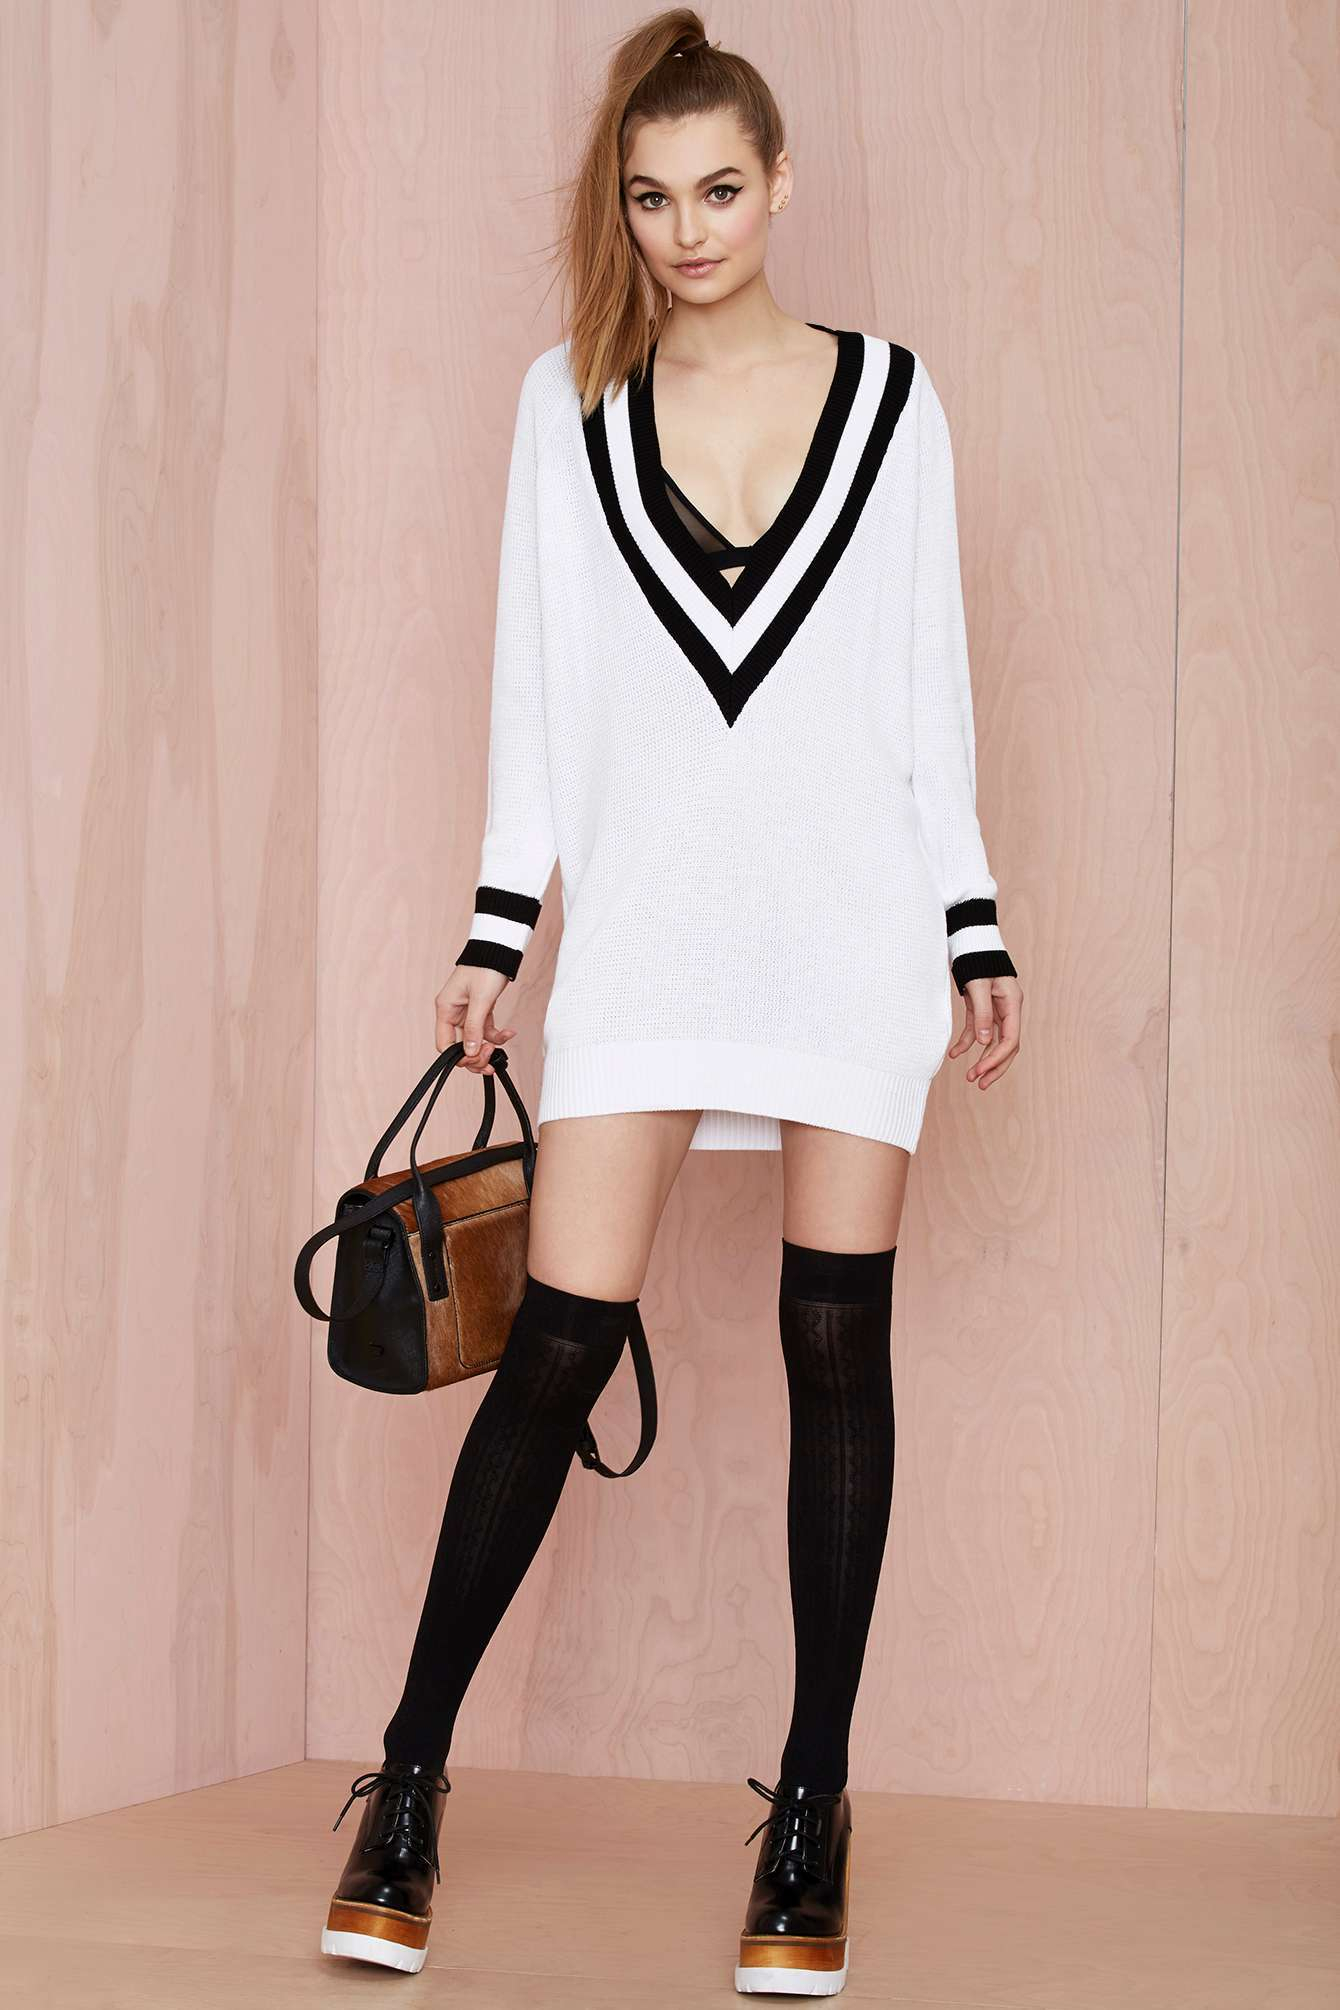 52e9a8b12ce Nasty Gal Club Kid Plunging Sweater Dress in White - Lyst